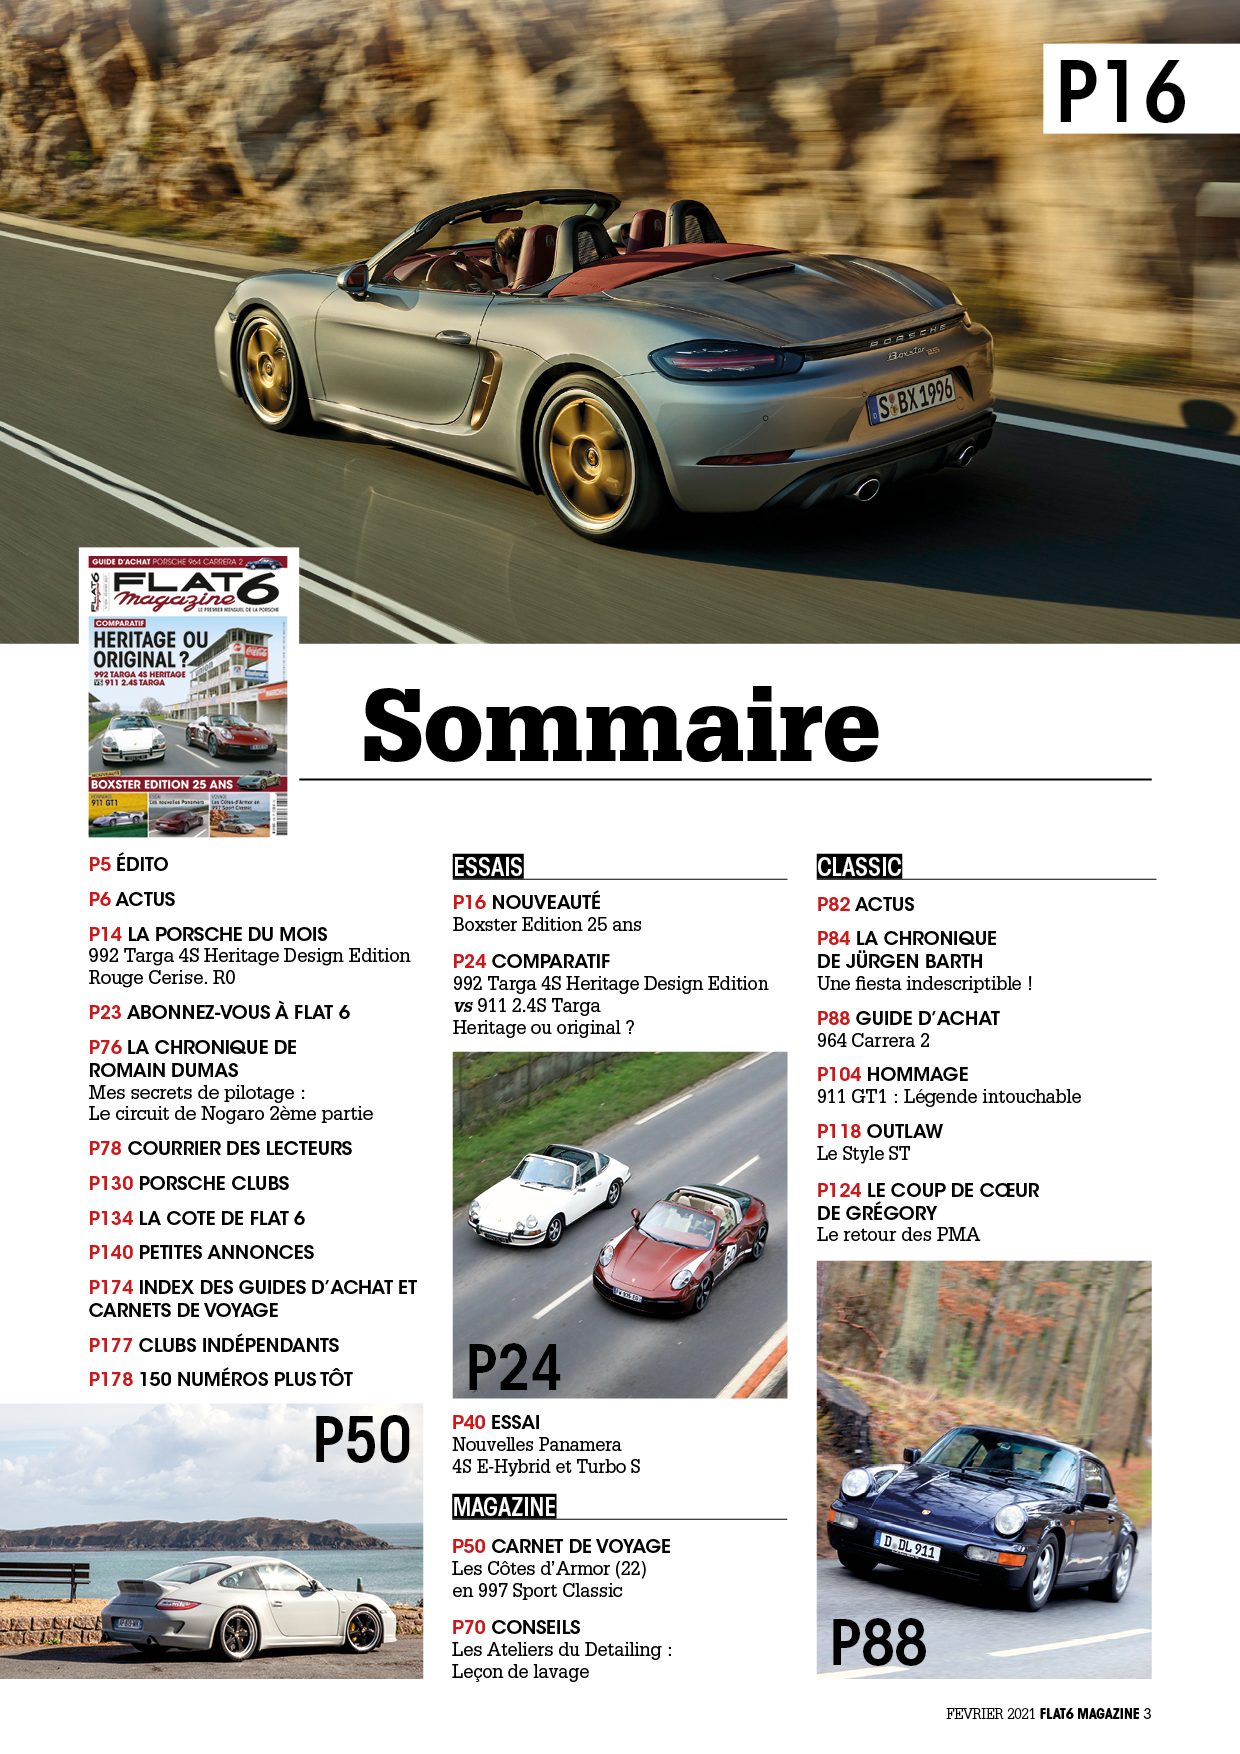 Sommaire359